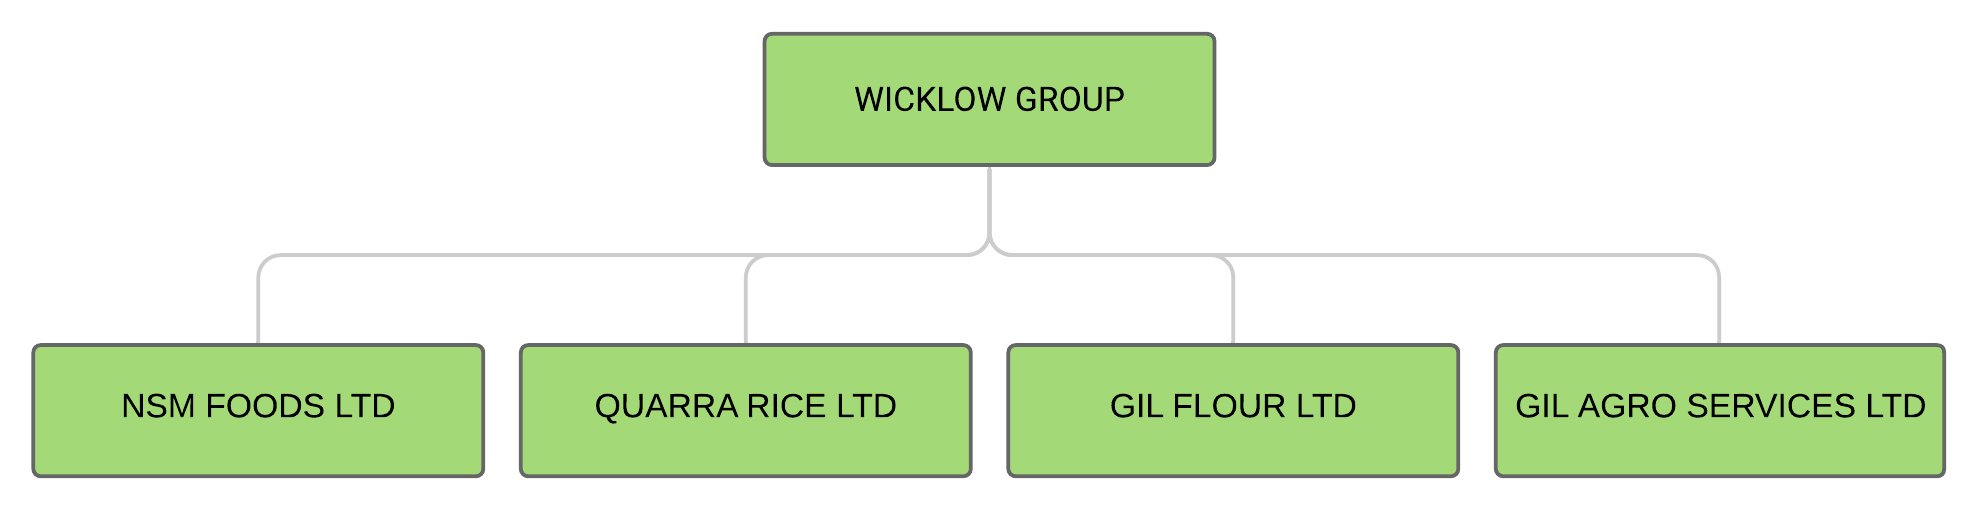 About Wicklow Team Organogram